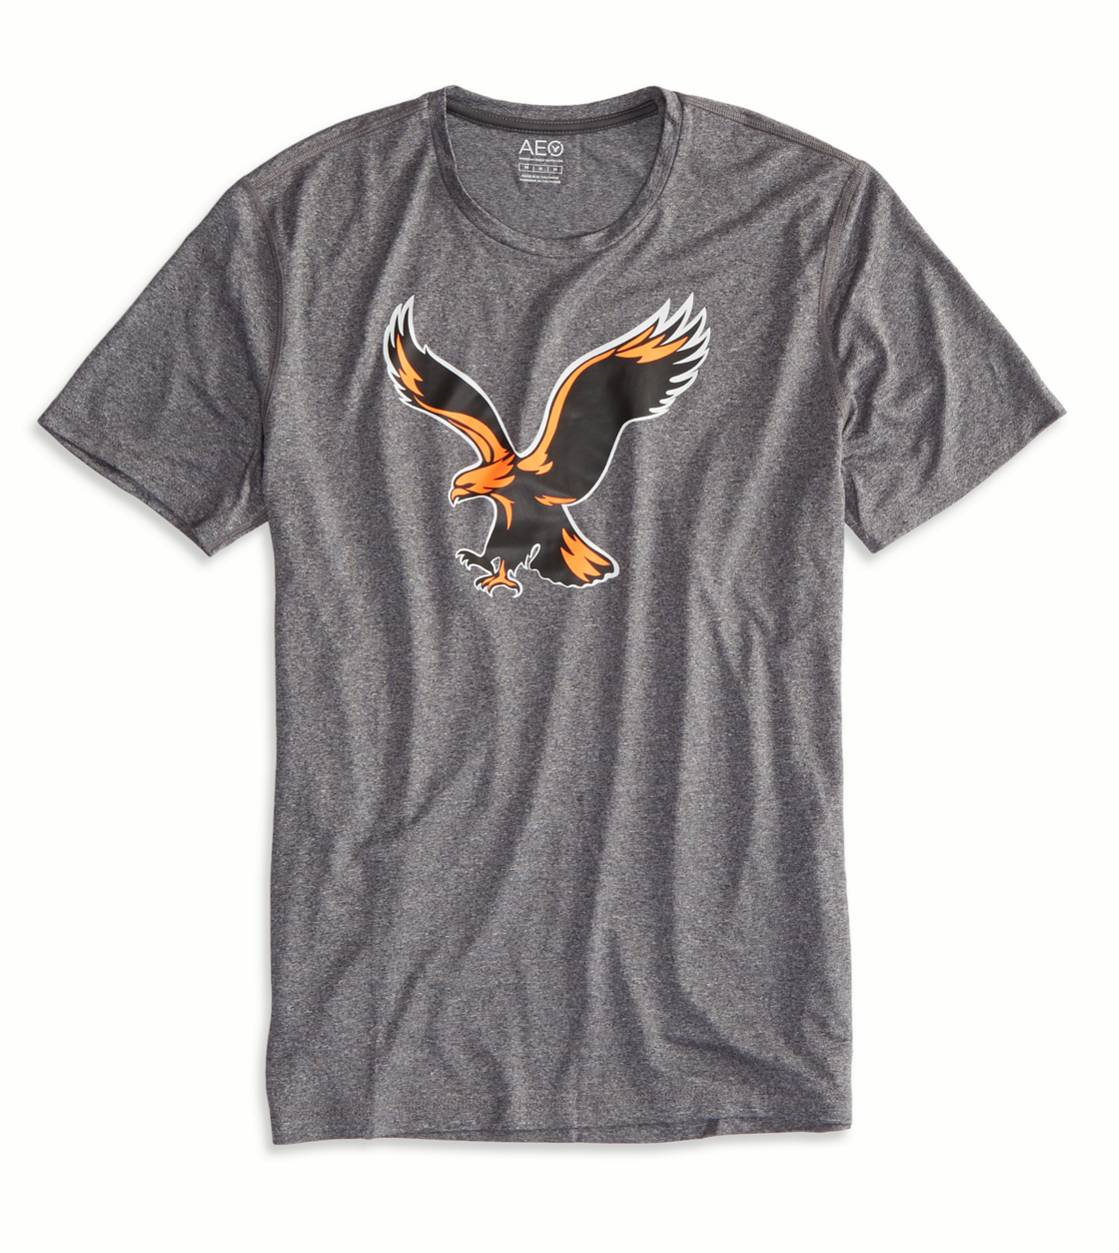 Medium Heather Grey AEO Performance Crew T-Shirt